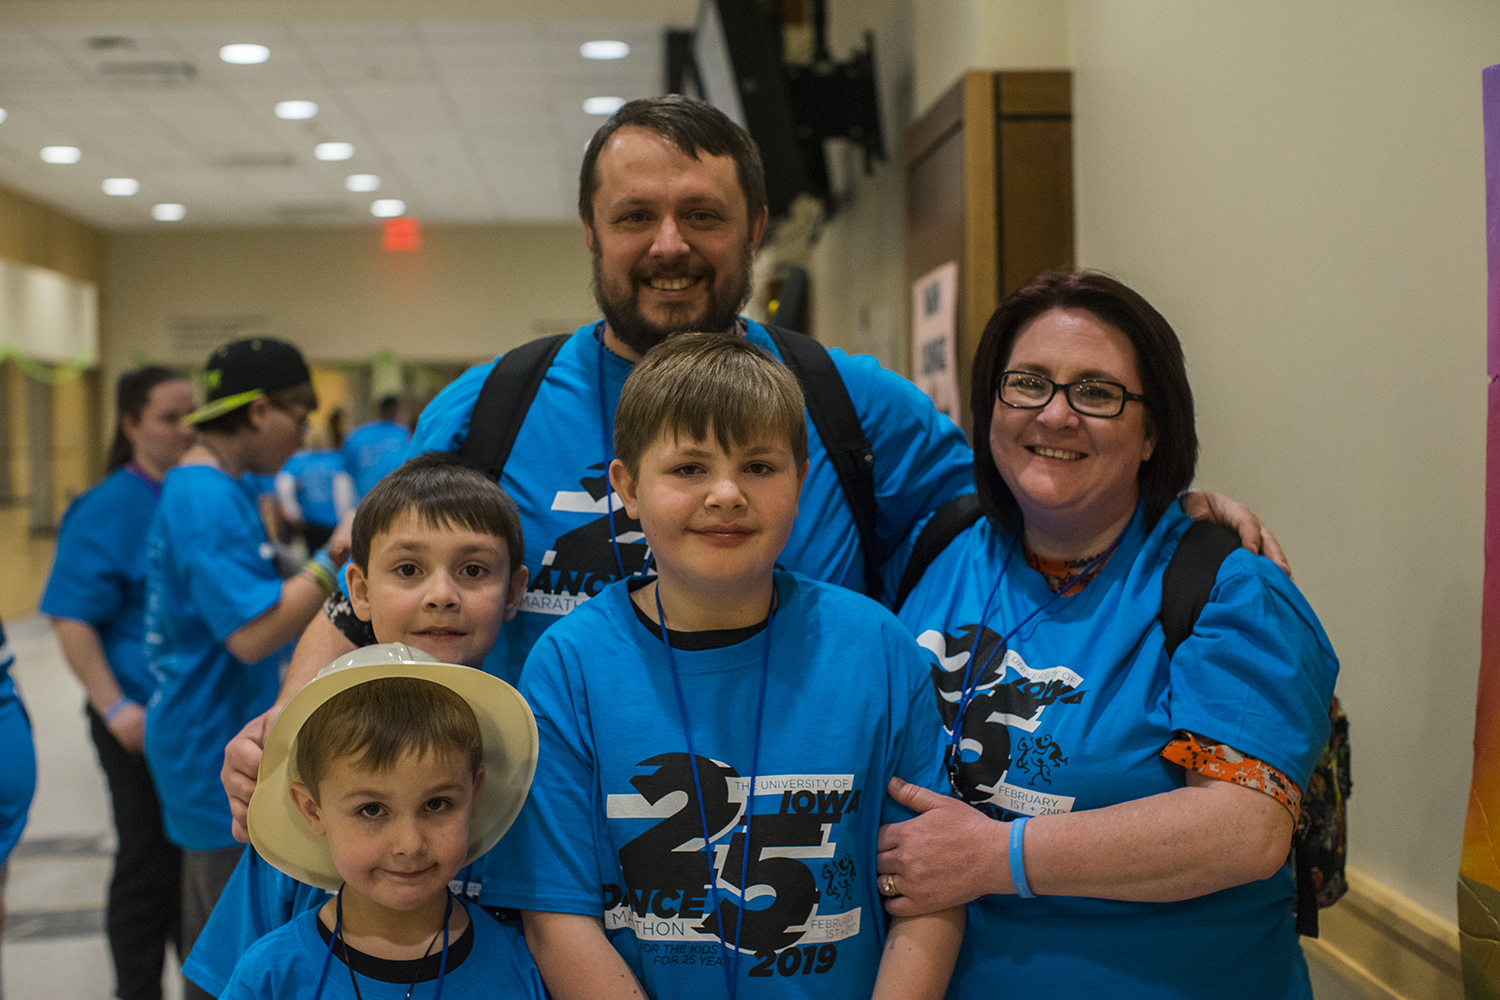 The Lanferman Family is seen after leaving the main ballroom. The family has been to Dance Marathon 2 years previously, and their son was diagnosed with cancer 11 years ago. There name was announced on stage during Dance Marathon 25 at the Iowa Memorial Union on Friday Feb 1, 2019.